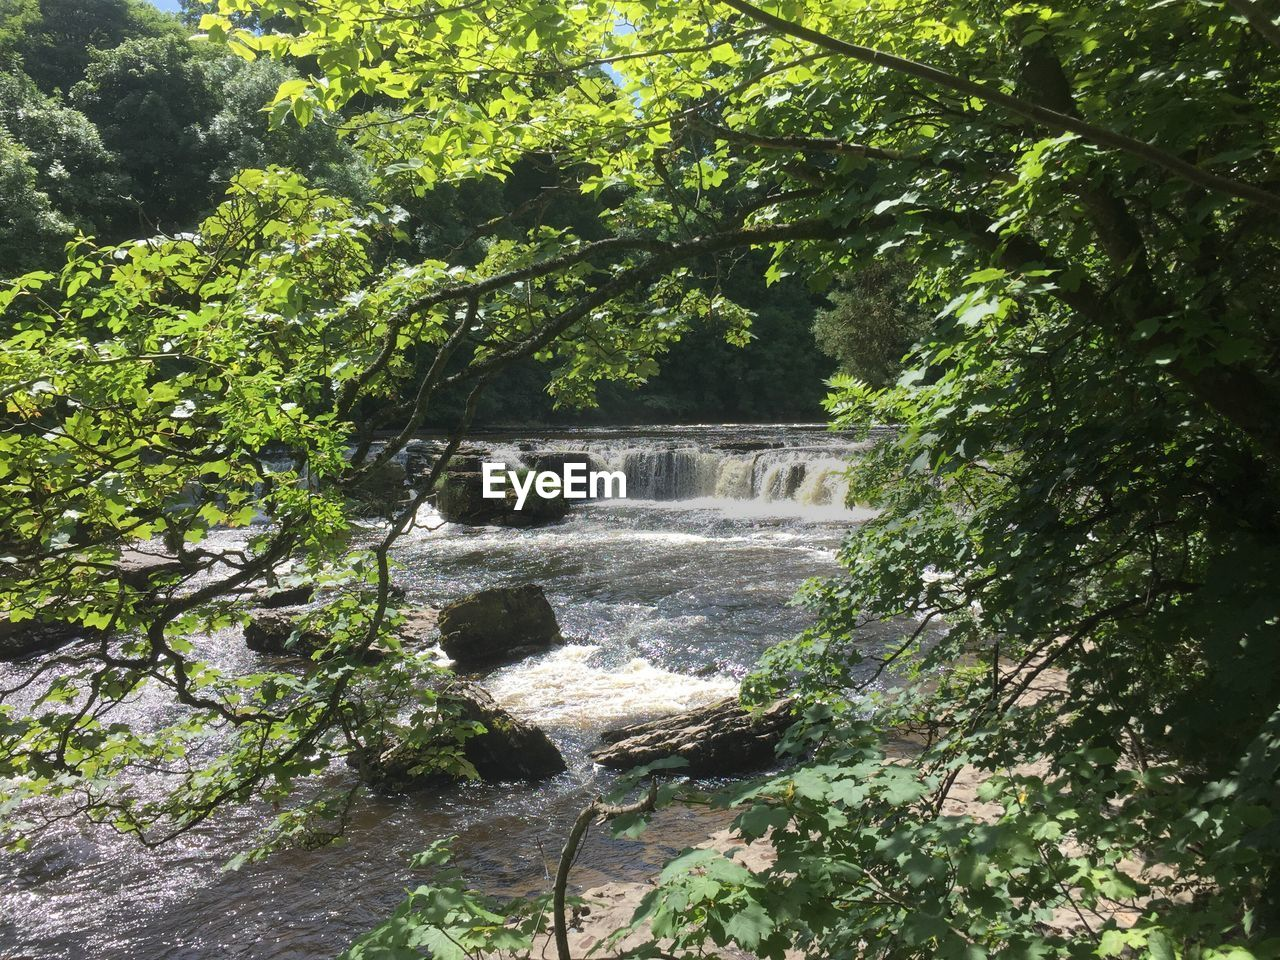 tree, flowing water, nature, waterfall, day, outdoors, beauty in nature, water, motion, growth, no people, scenics, forest, green color, river, plant, branch